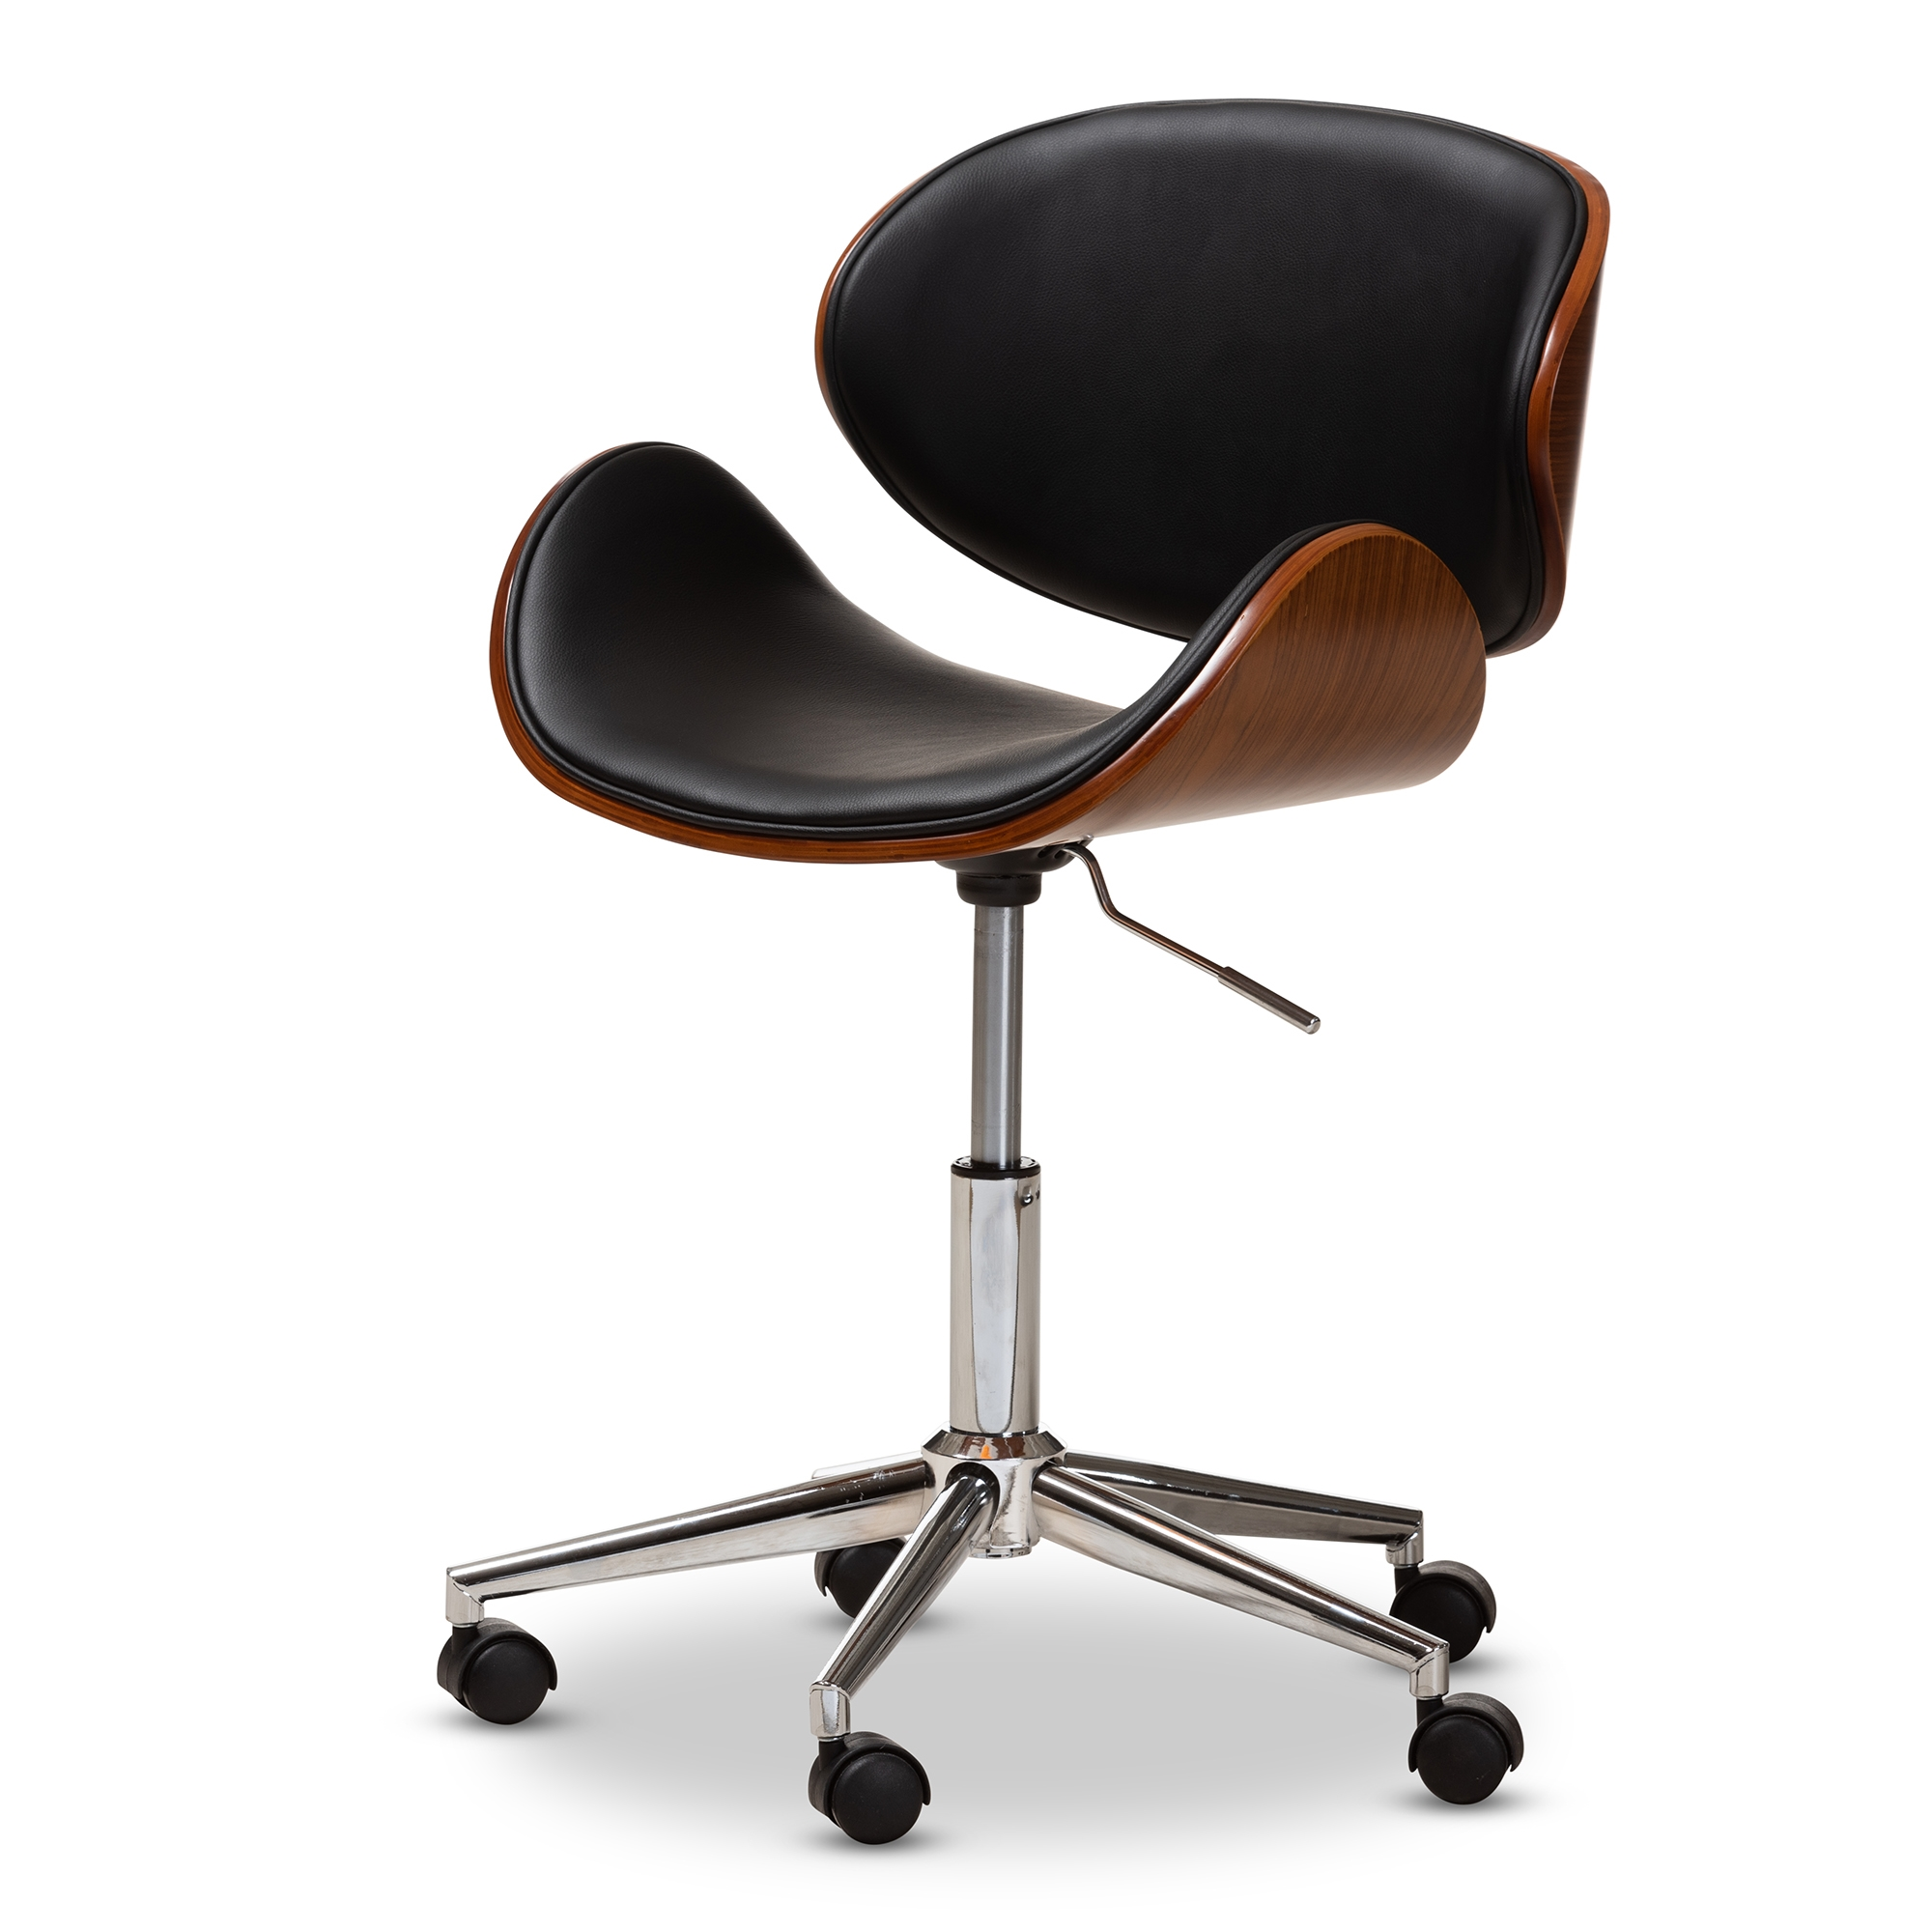 Baxton Studio Ambrosio Modern And Contemporary Black Faux Leather  Upholstered Chrome Finished Metal Adjustable Swivel